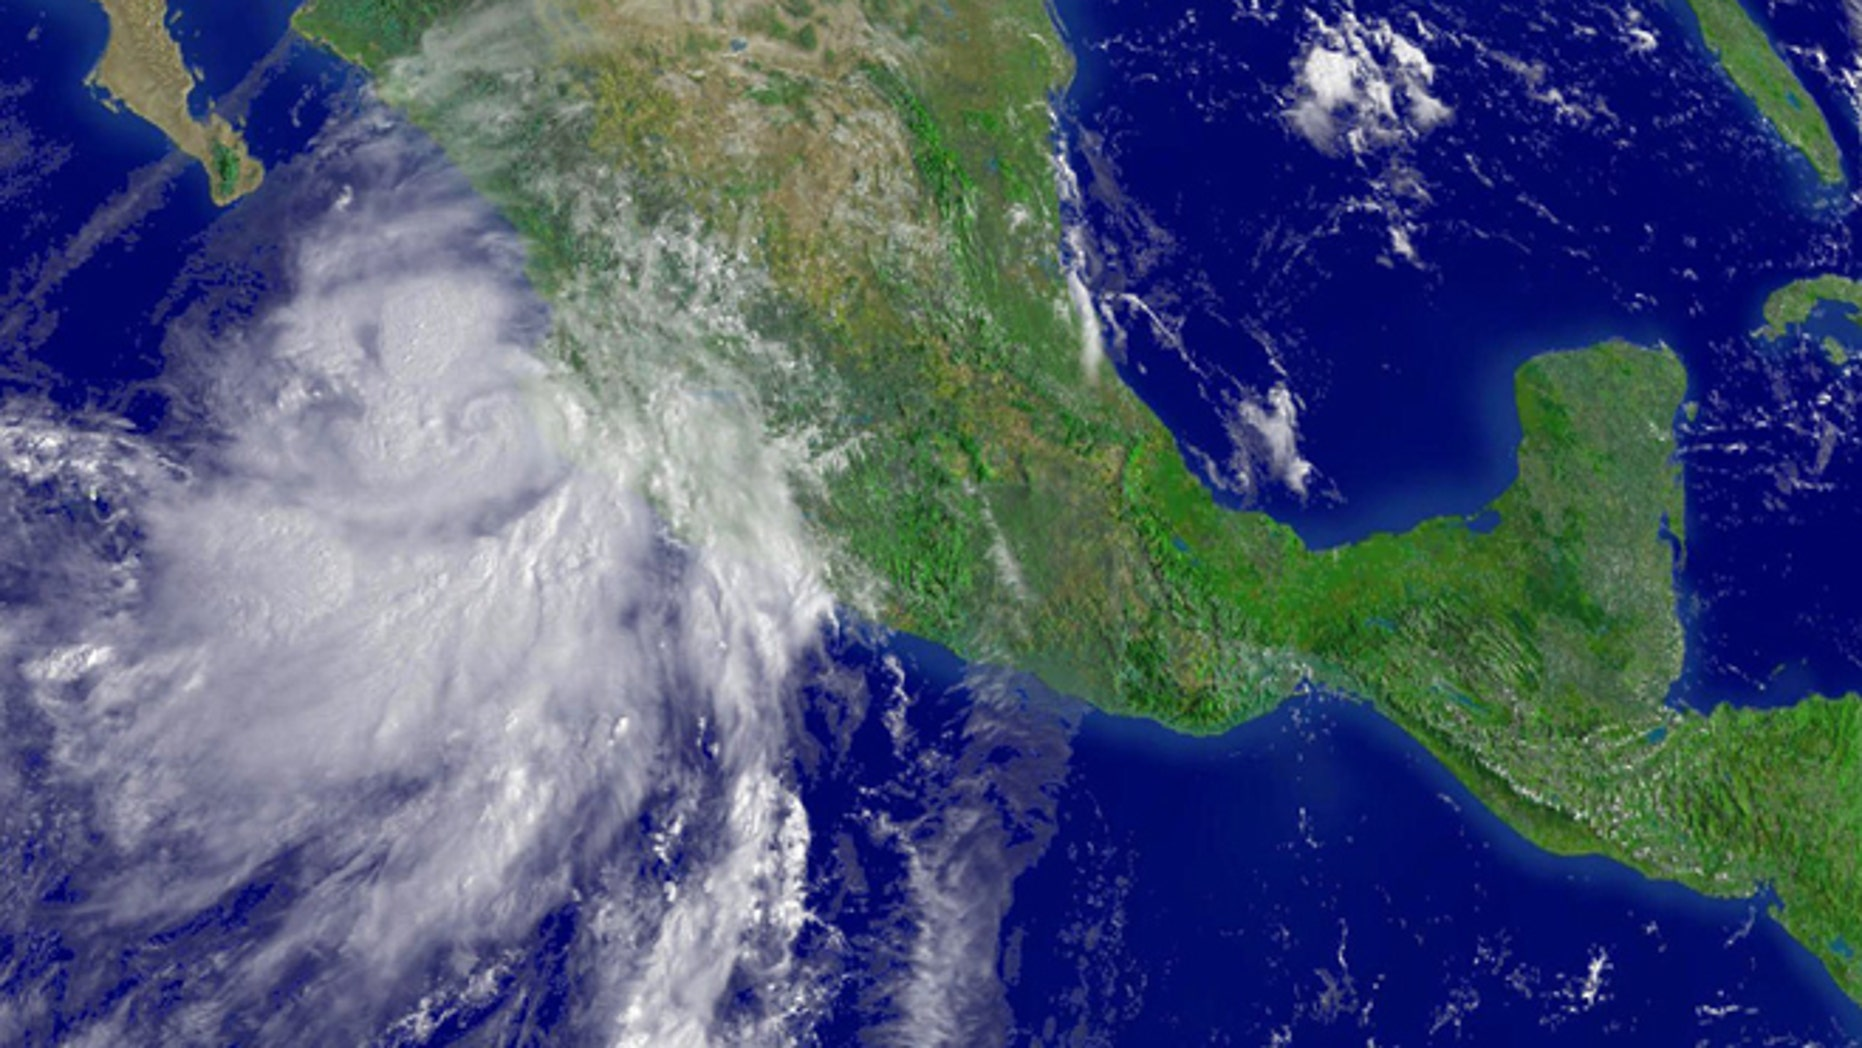 A 2006 tropical storm threatens the Pacific coast of Mexico. (Photo by NOAA via Getty Images)